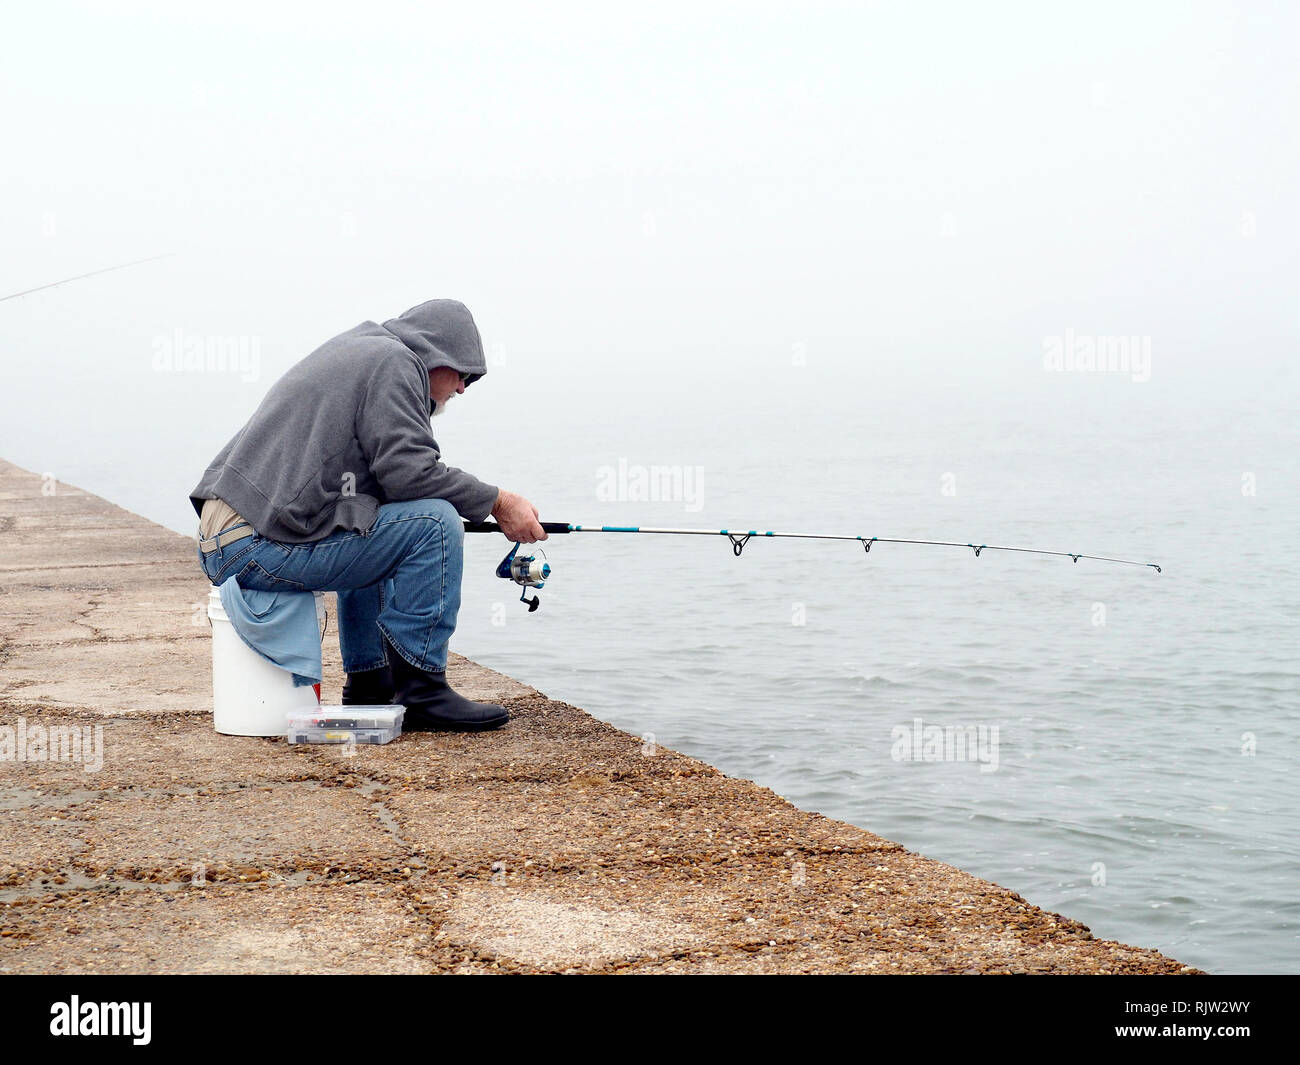 an-old-man-in-blue-jeans-and-gray-hooded-sweat-shirt-sits-on-a-five-gallon-bucket-while-fishing-on-a-foggy-day-south-jetty-port-aransas-texas-usa-RJW2WY.jpg